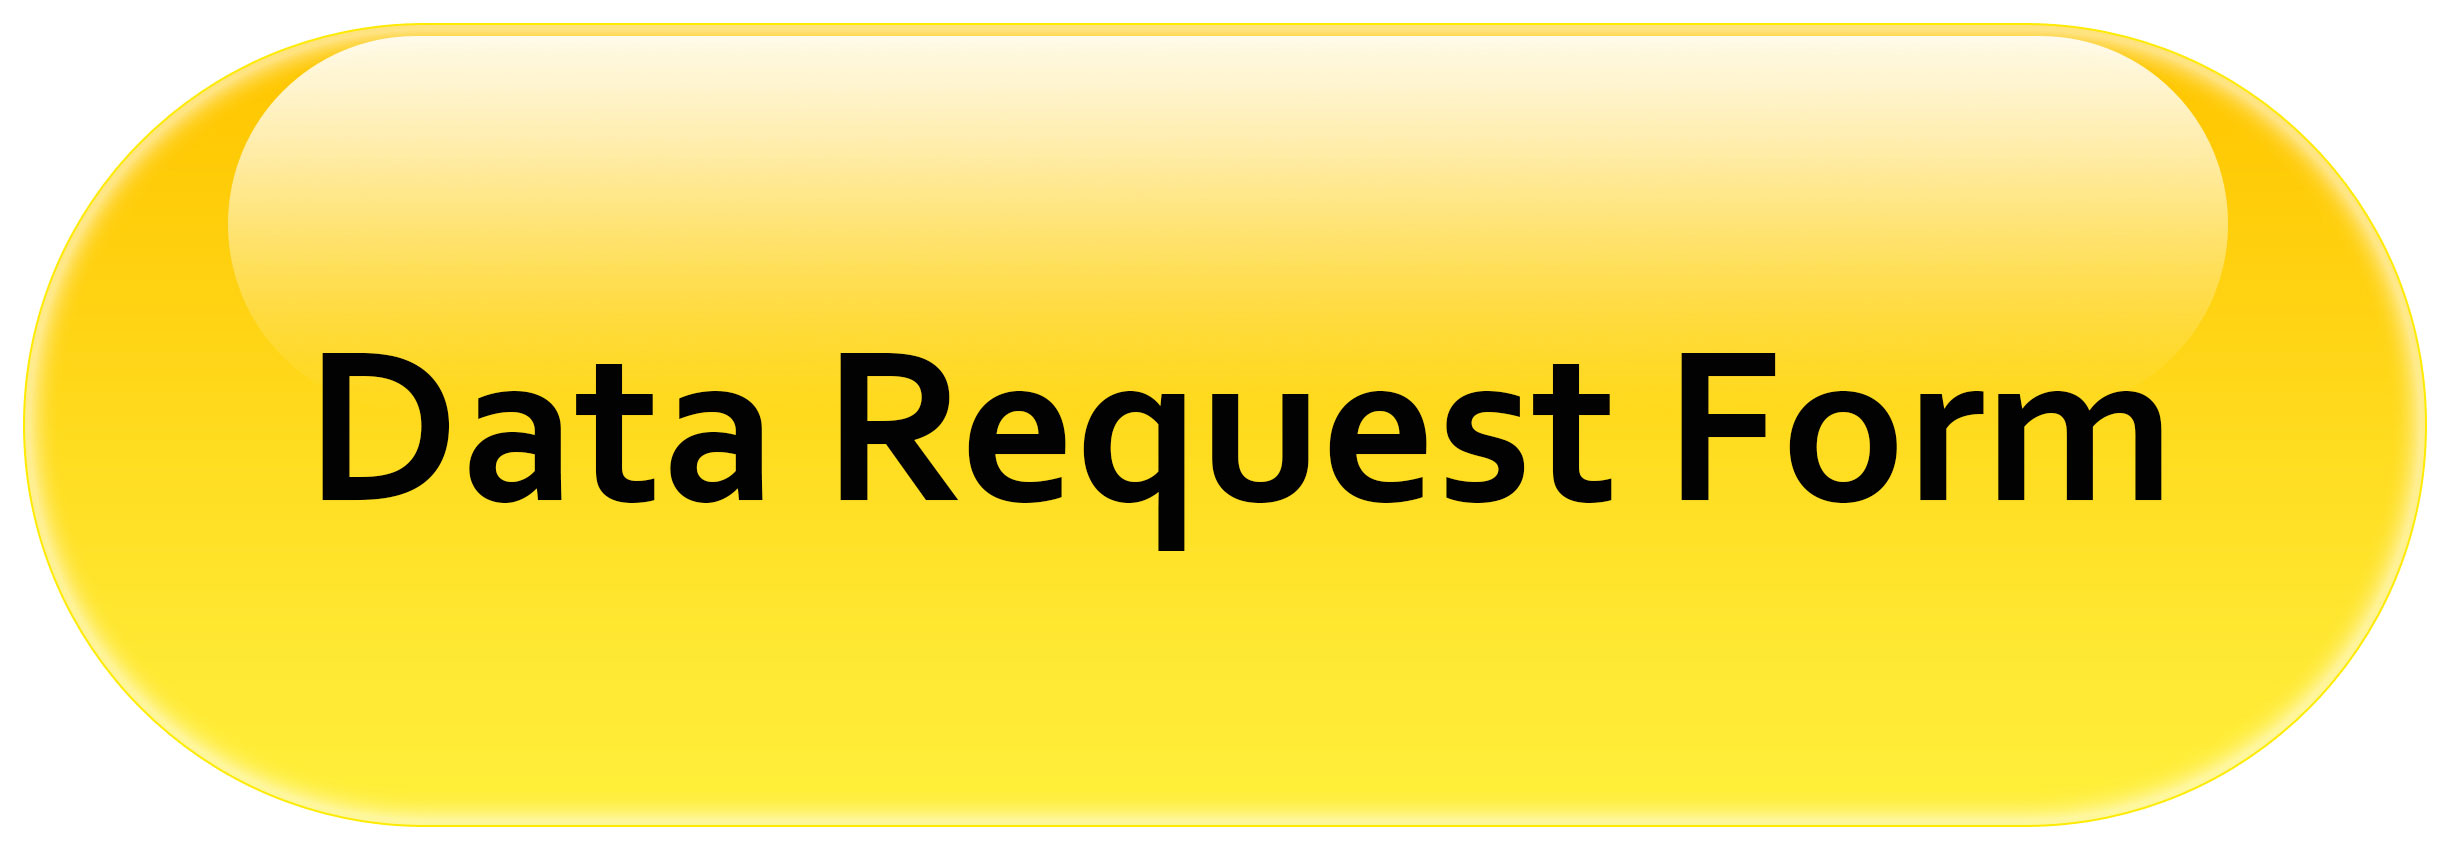 Data Request Form button